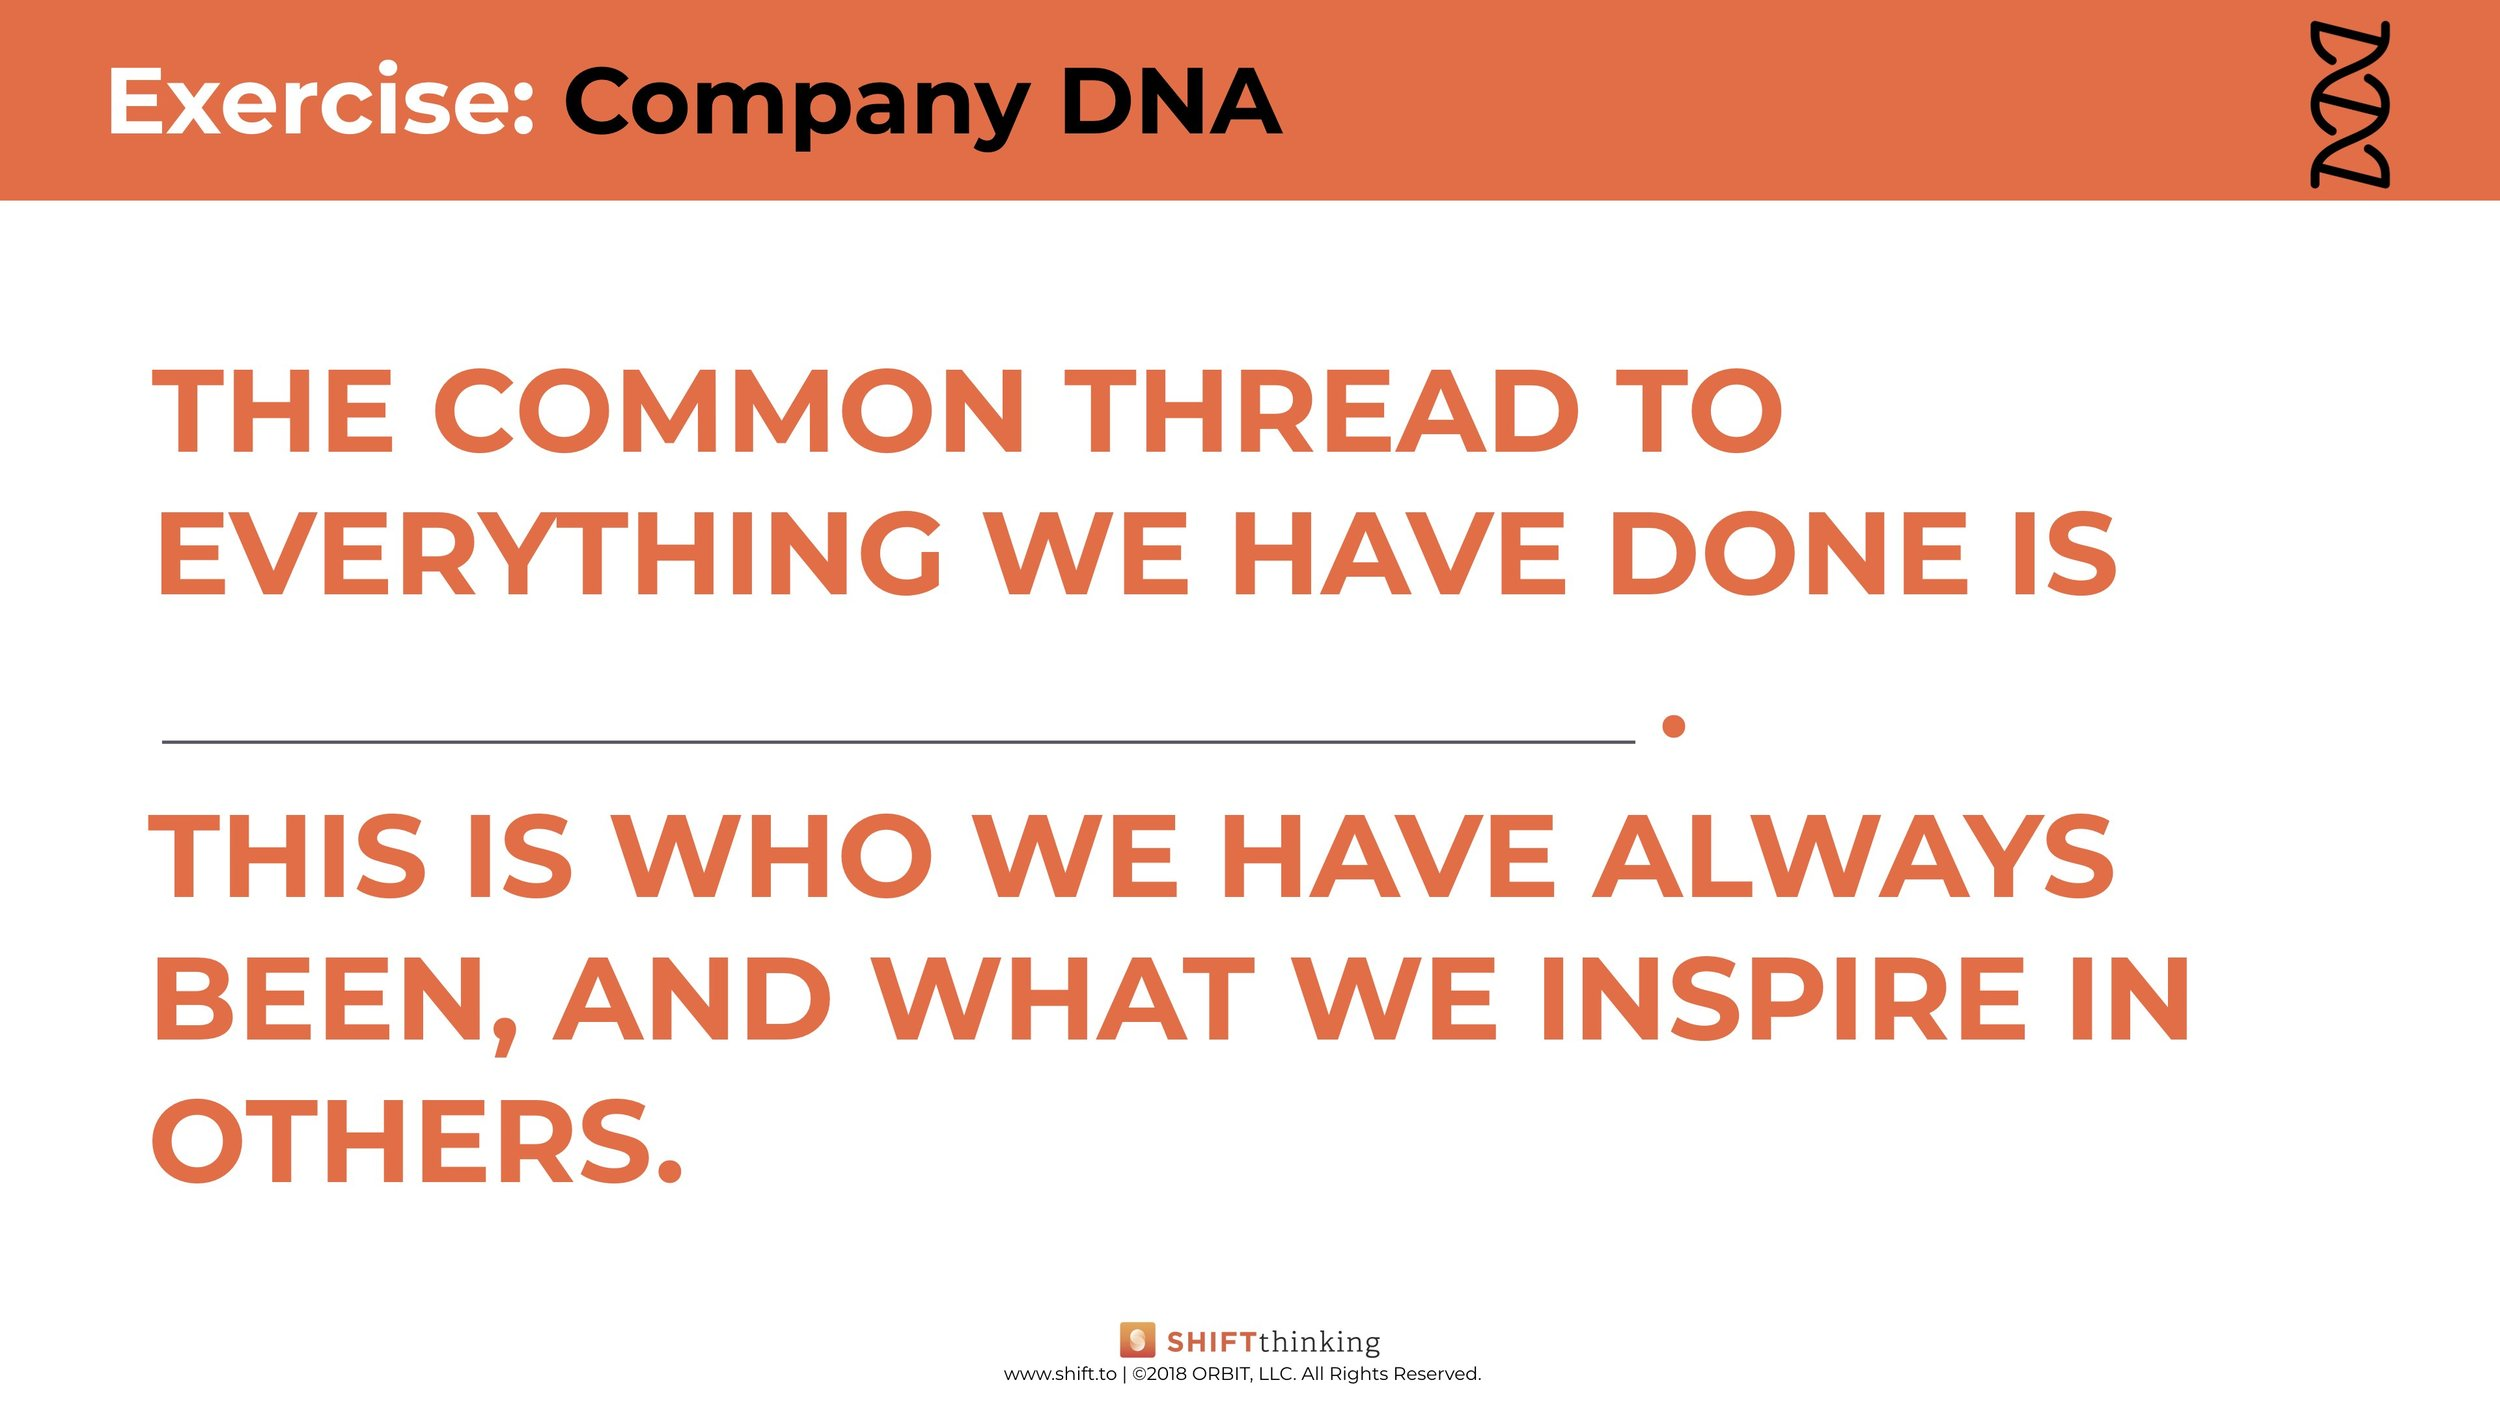 Worksheet: Finding Your Company DNA